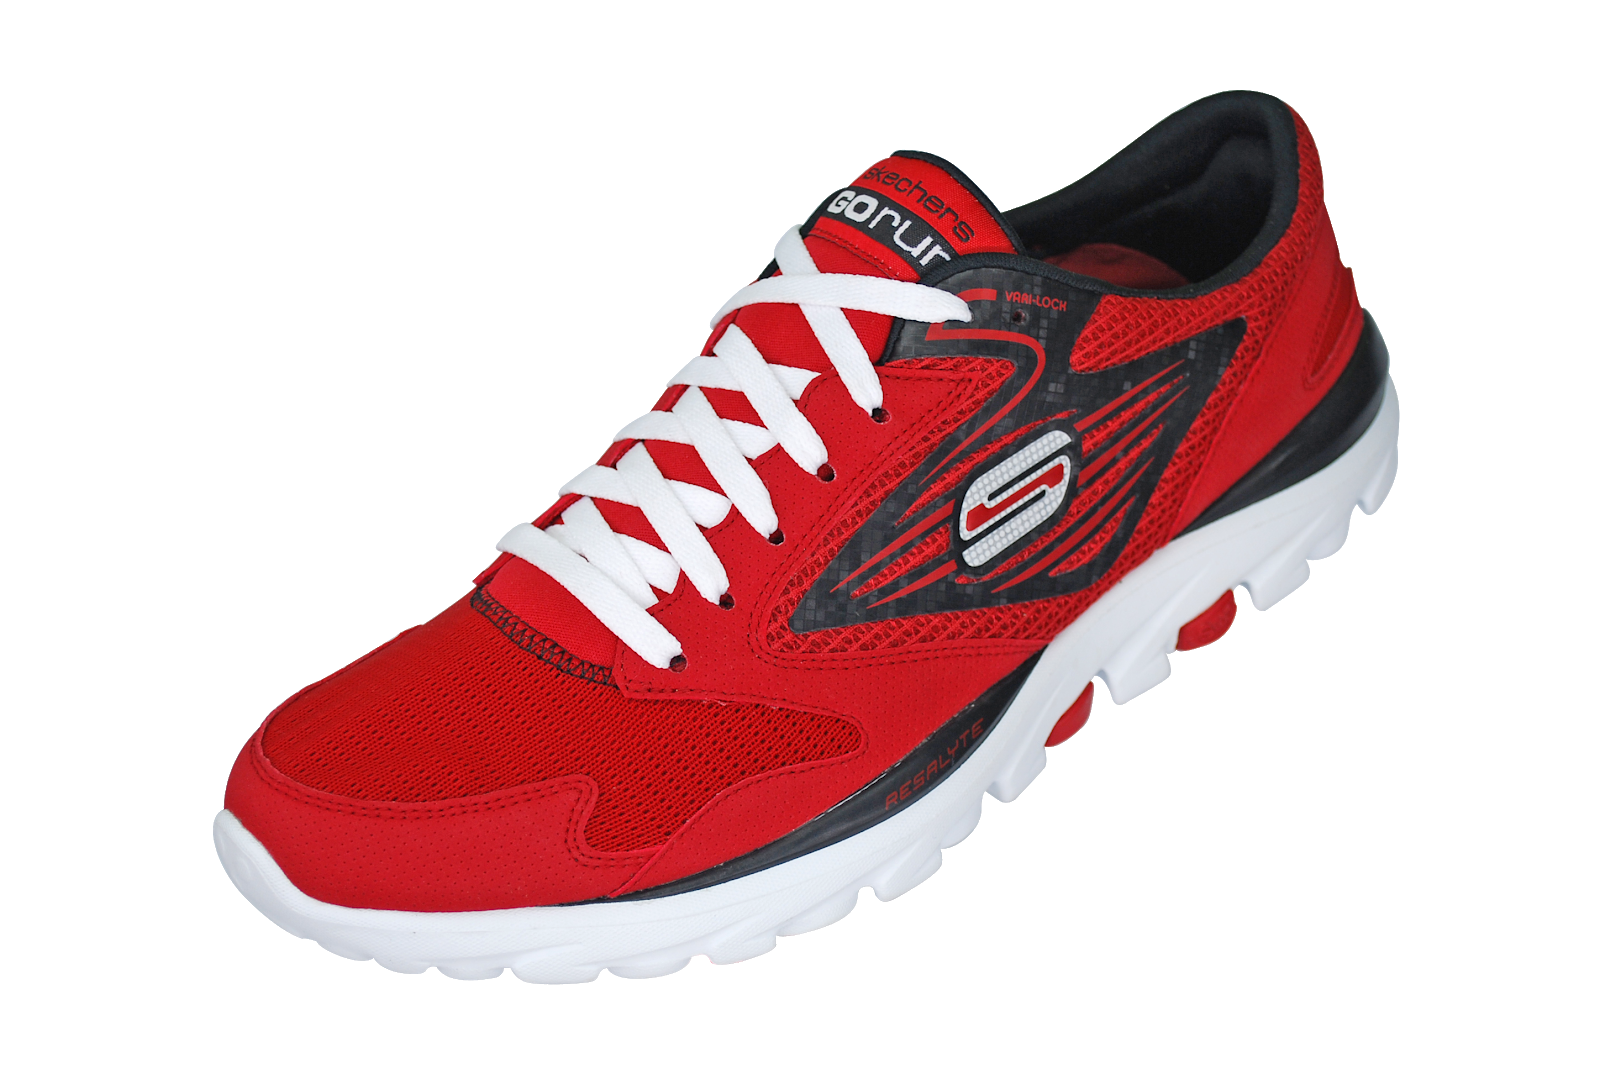 a cebu events blog skechers running shoes. Black Bedroom Furniture Sets. Home Design Ideas